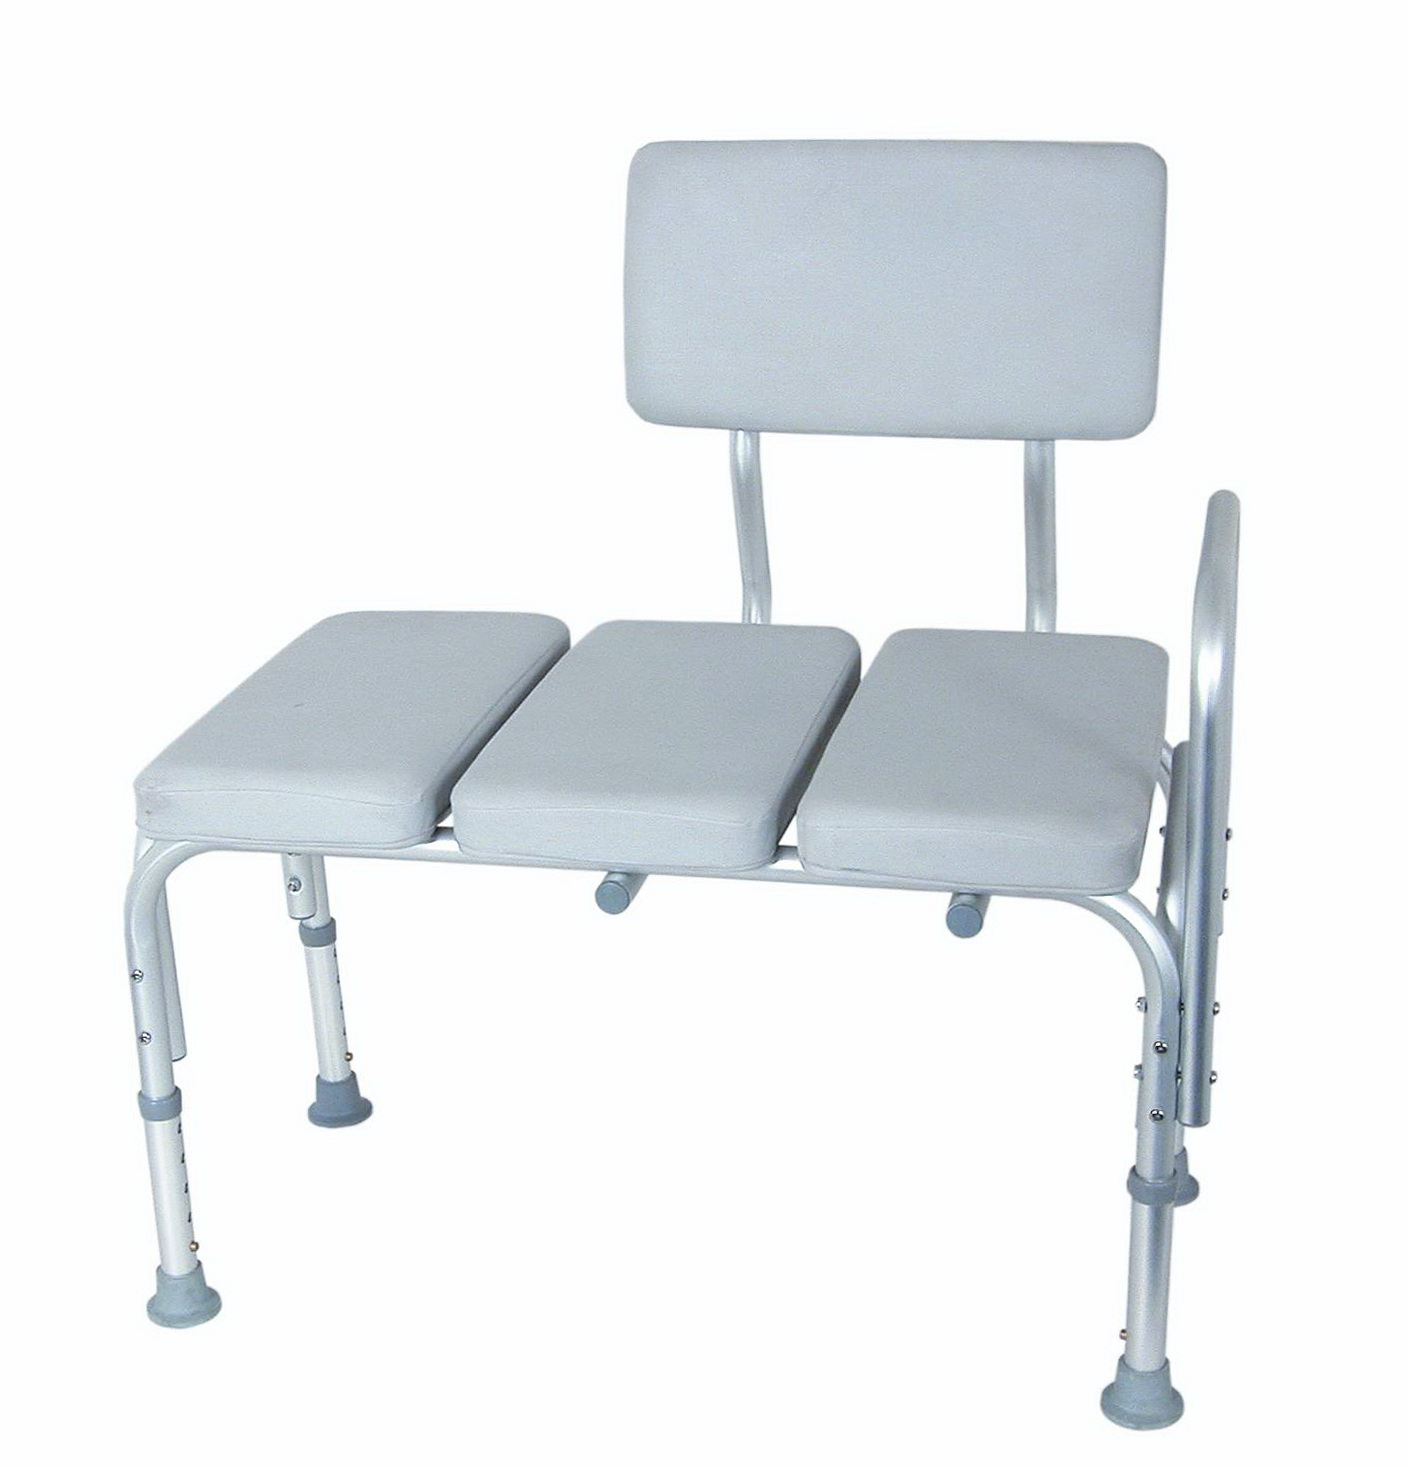 Sliding Transfer Bench With Cut Out Swivel Seat